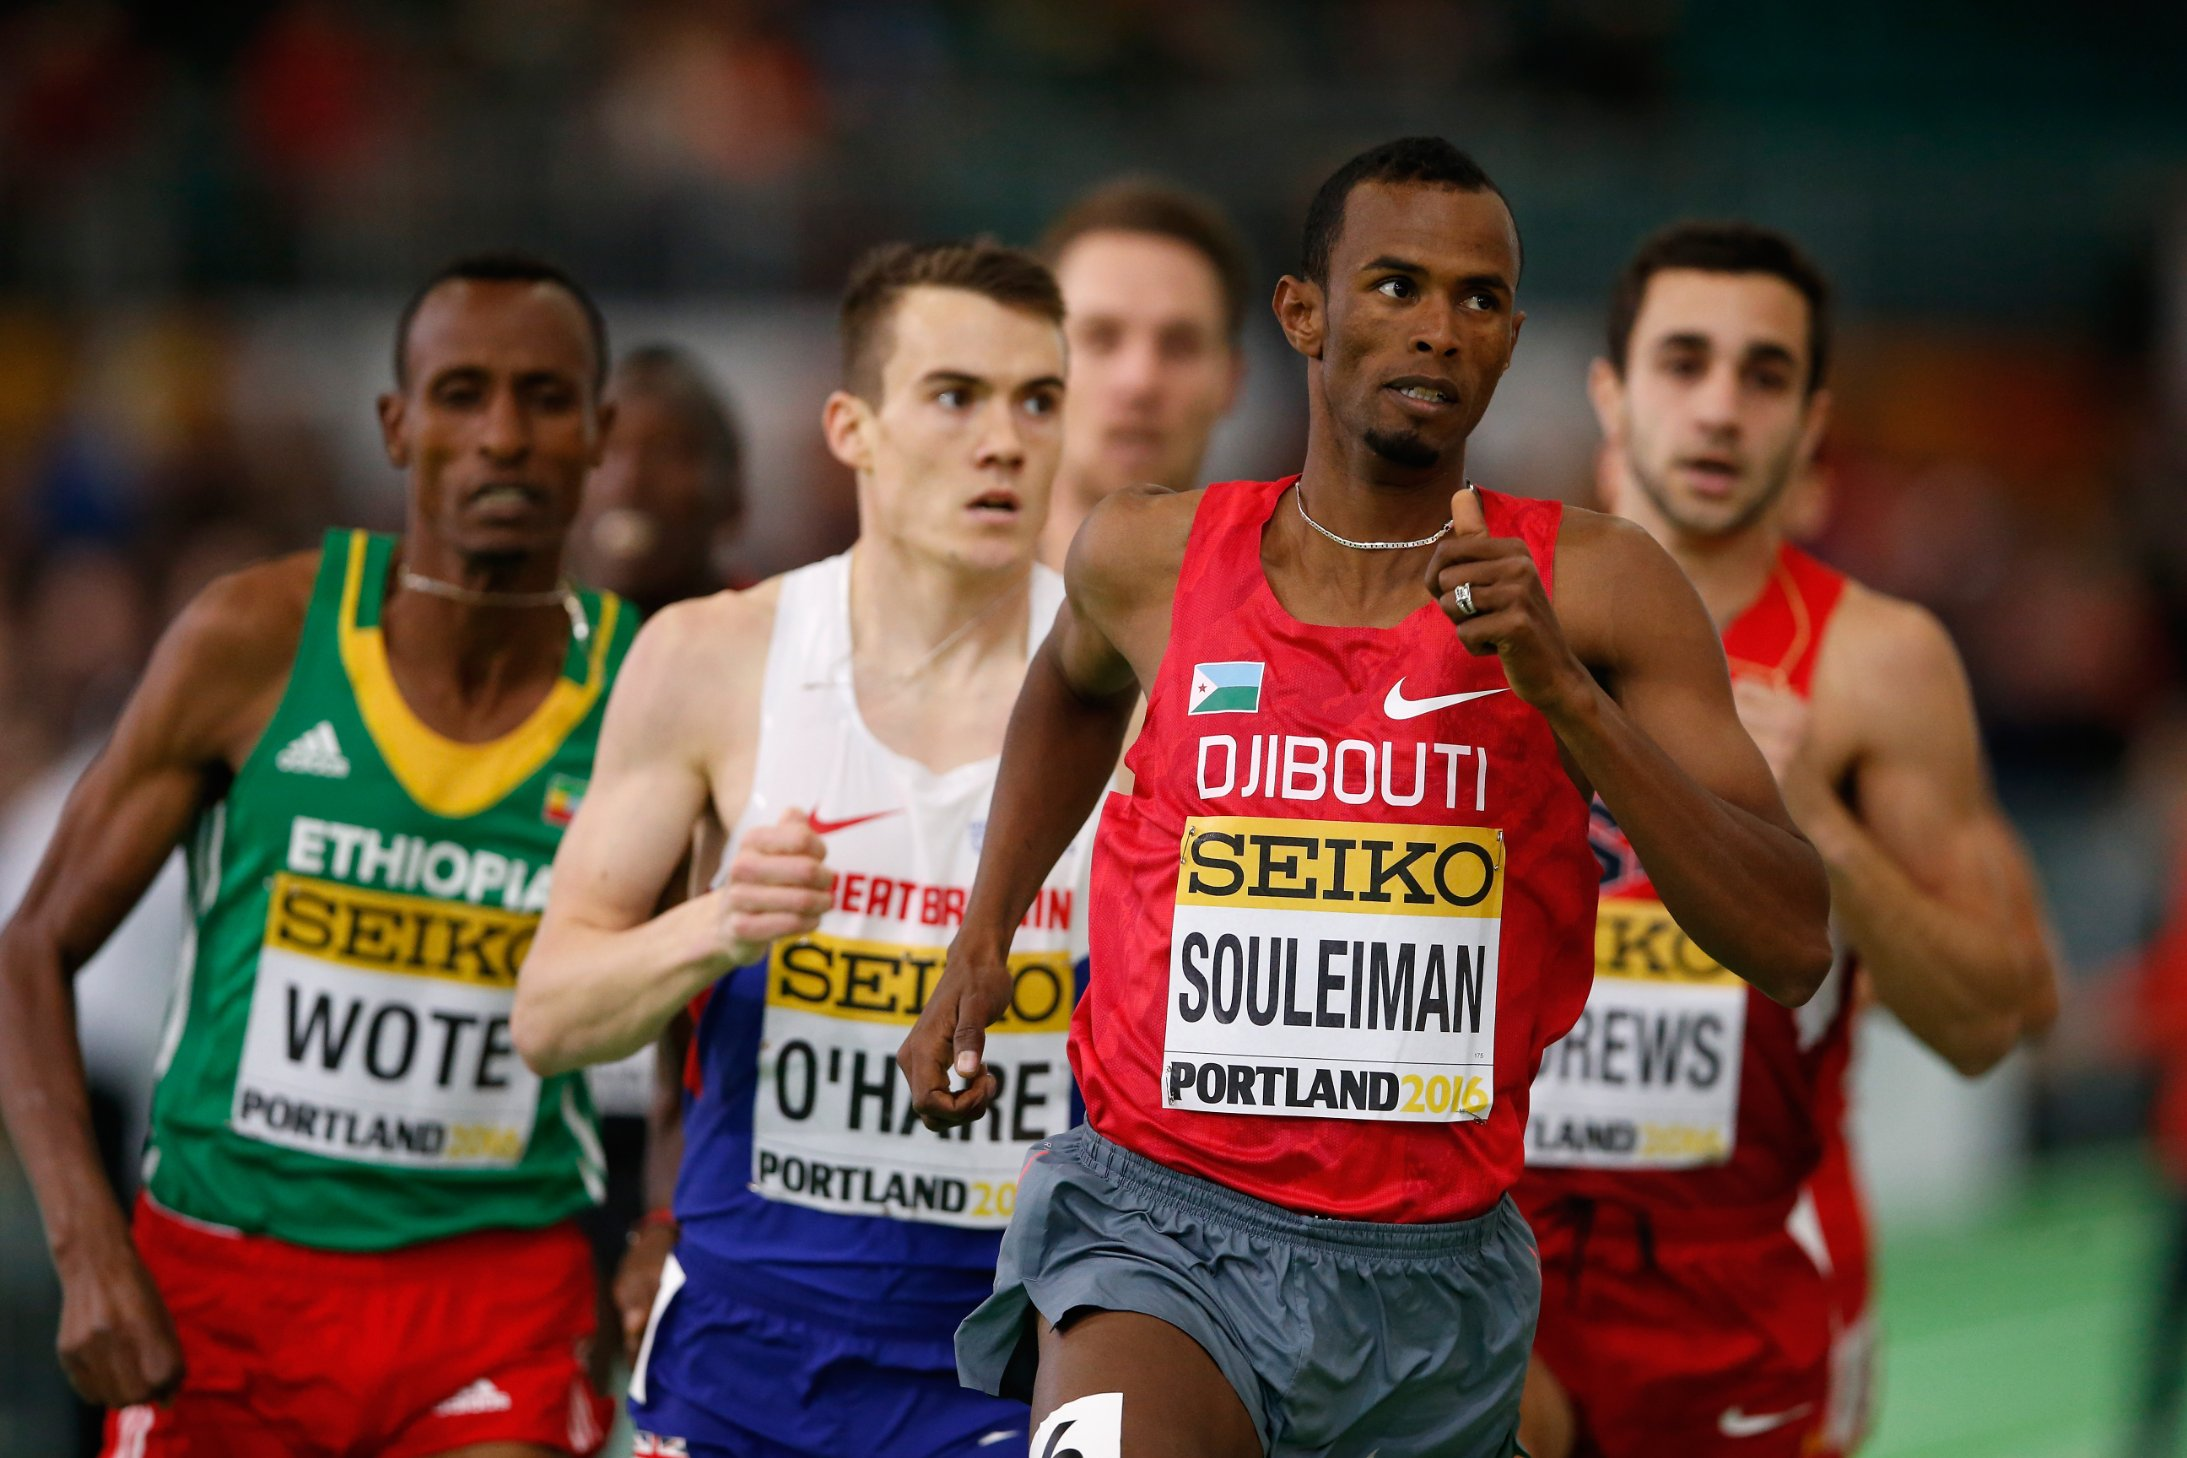 Hussein Ahmed Salah was only who won a bronze medal at the Olympics in the marathon in 1988.